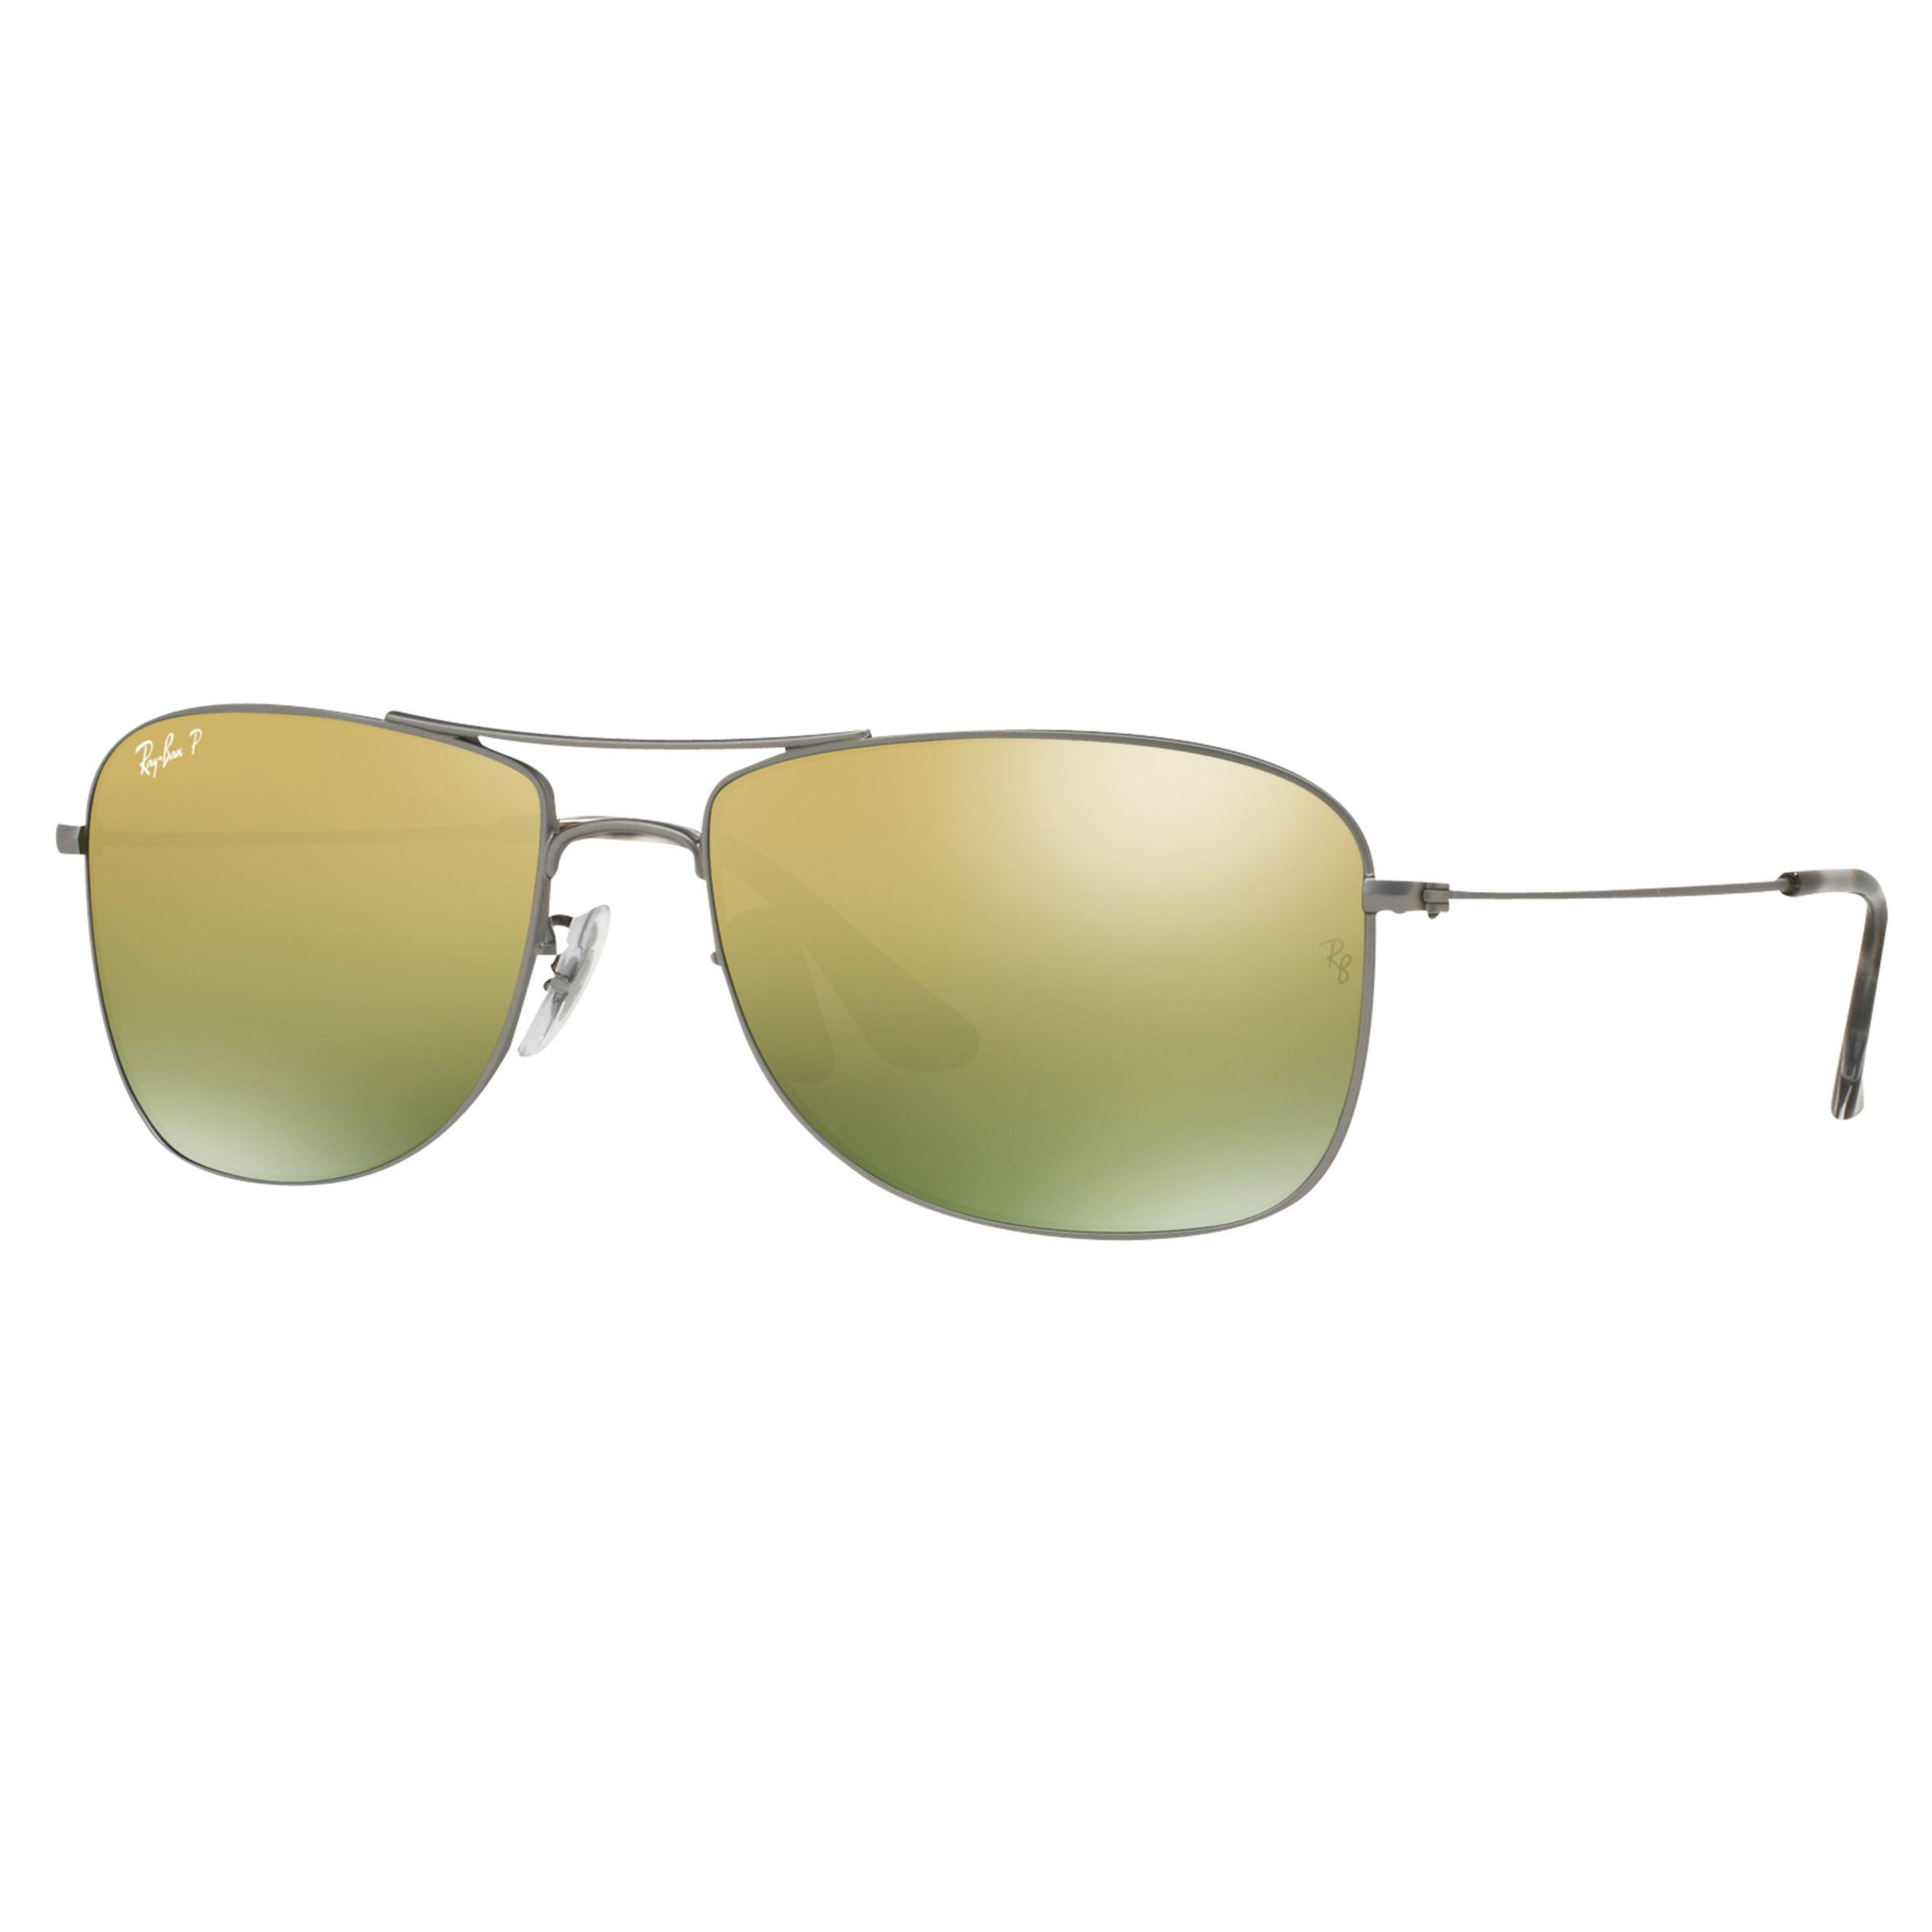 6fc112428a Ray-Ban Rb3543 Polarised Aviator Sunglasses in Gray - Lyst